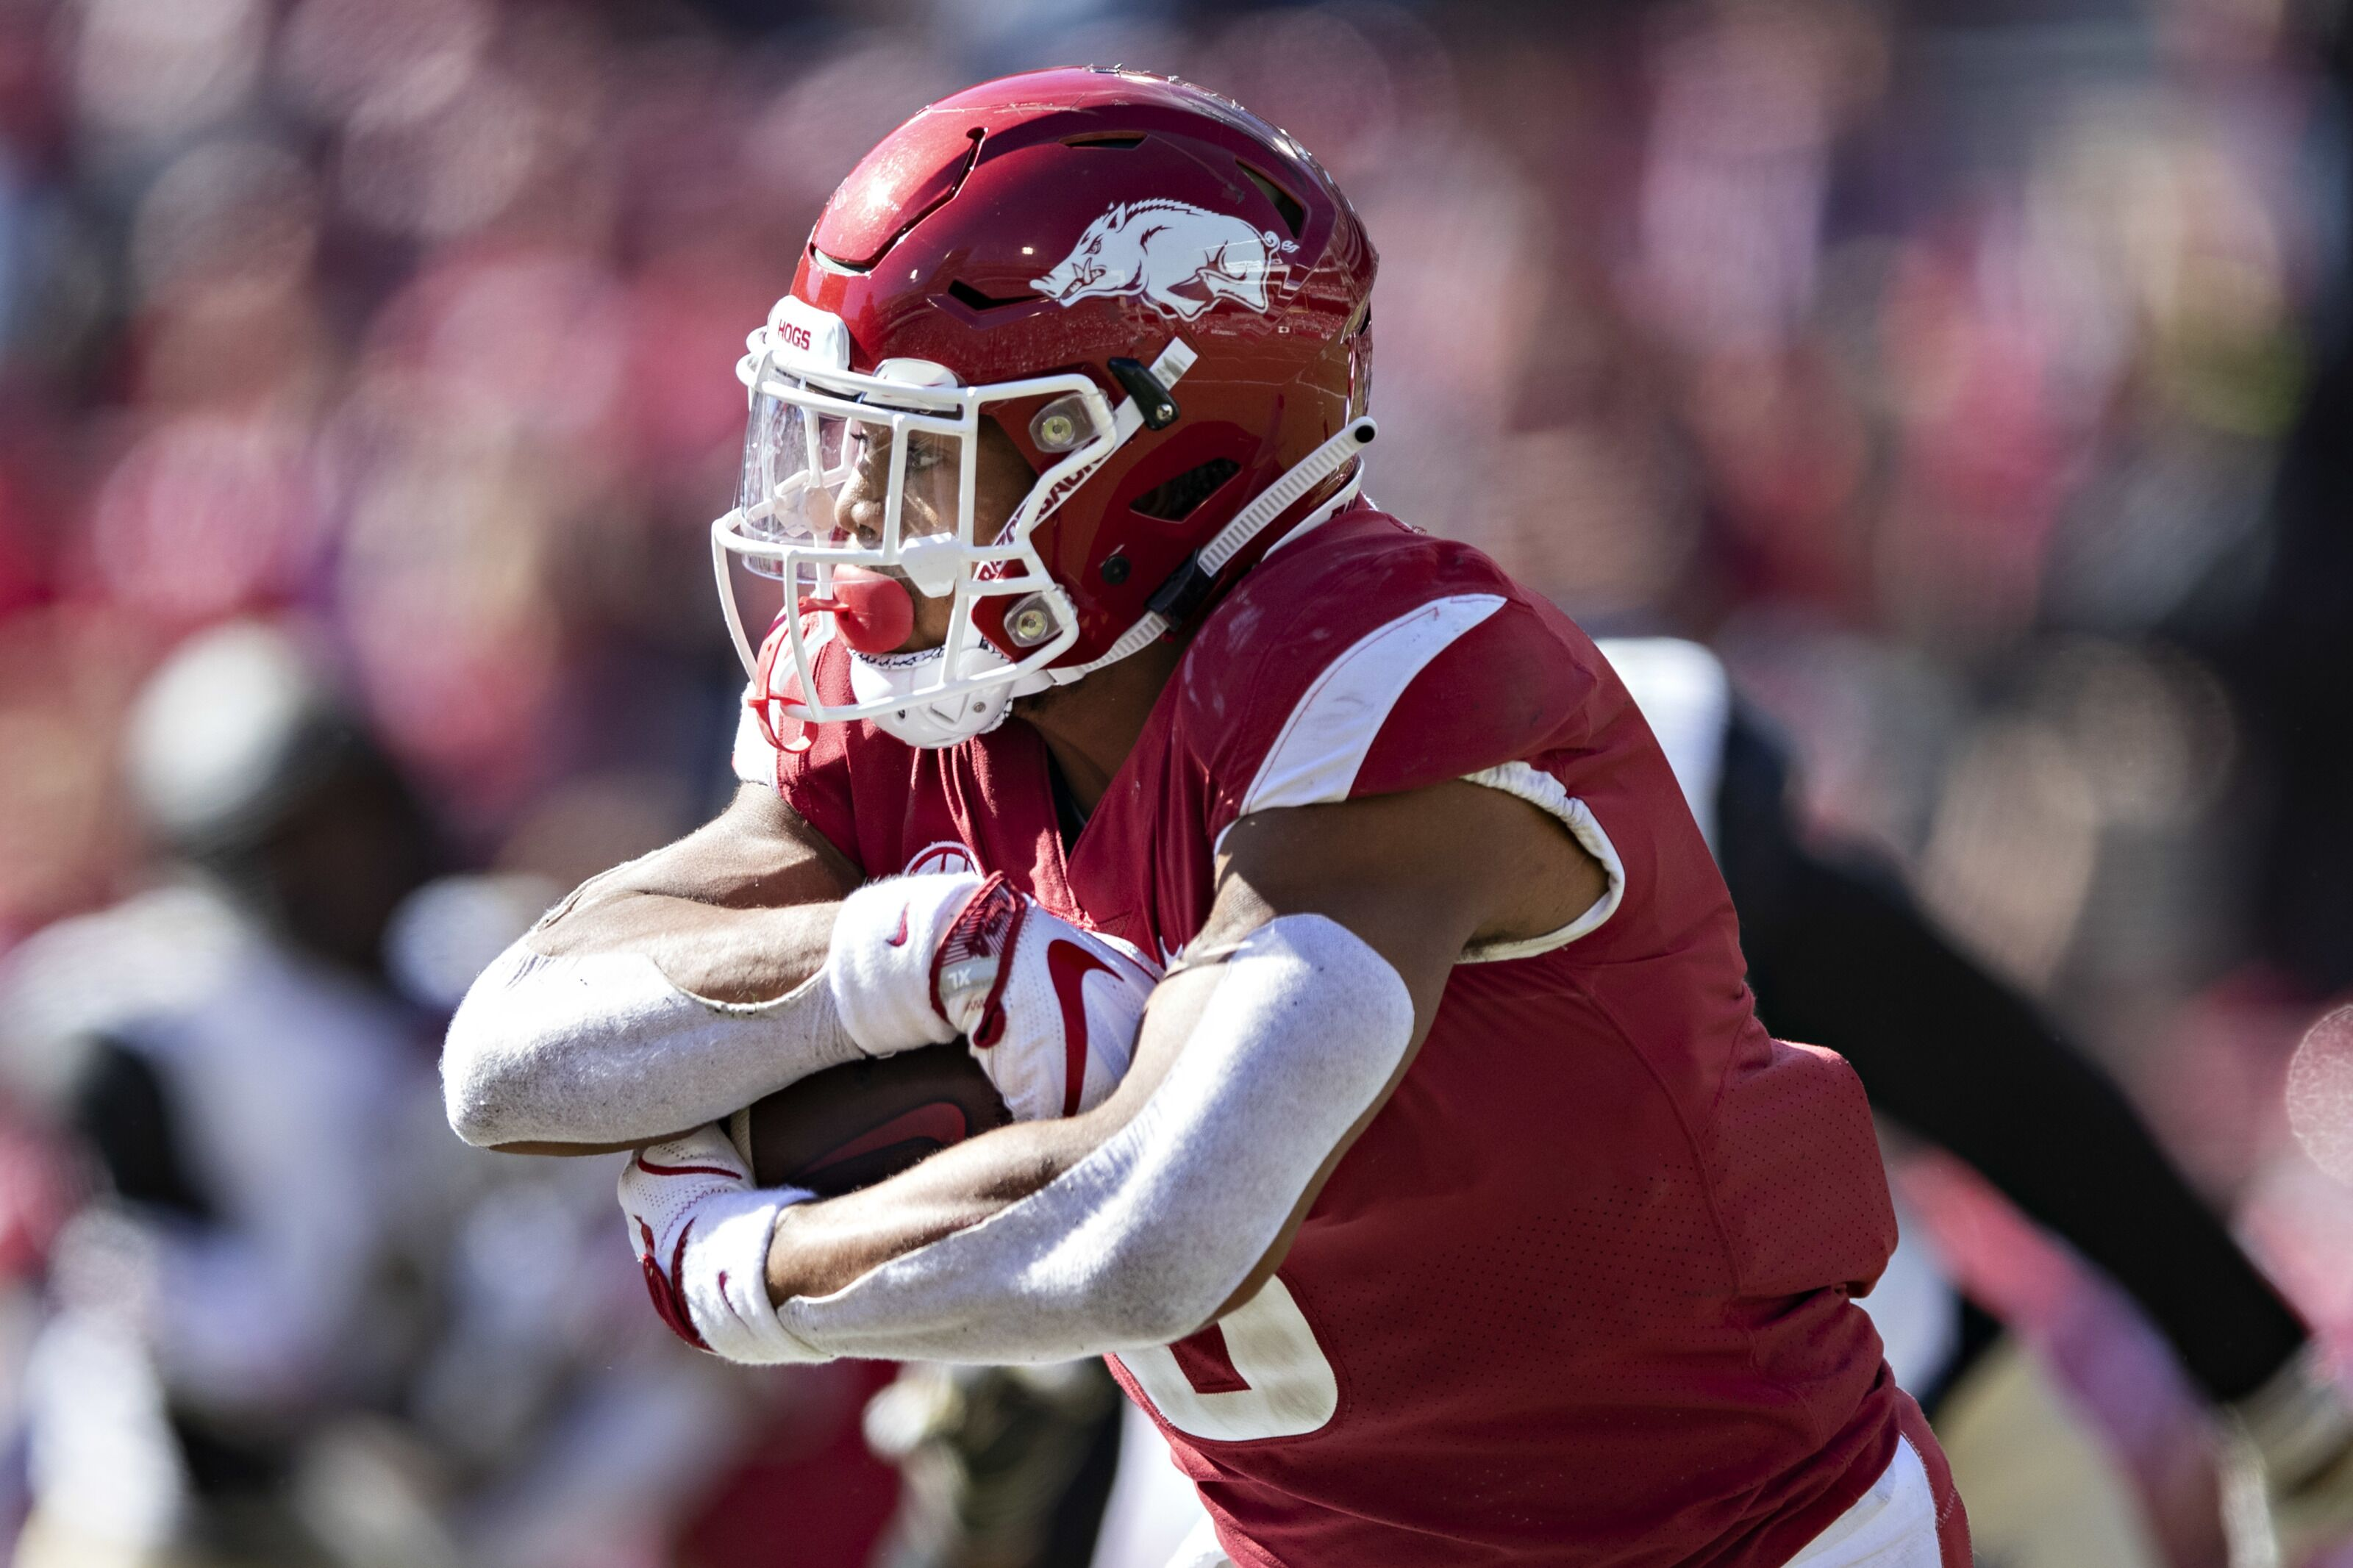 Arkansas Football: Post-spring game-by-game predictions for 2019